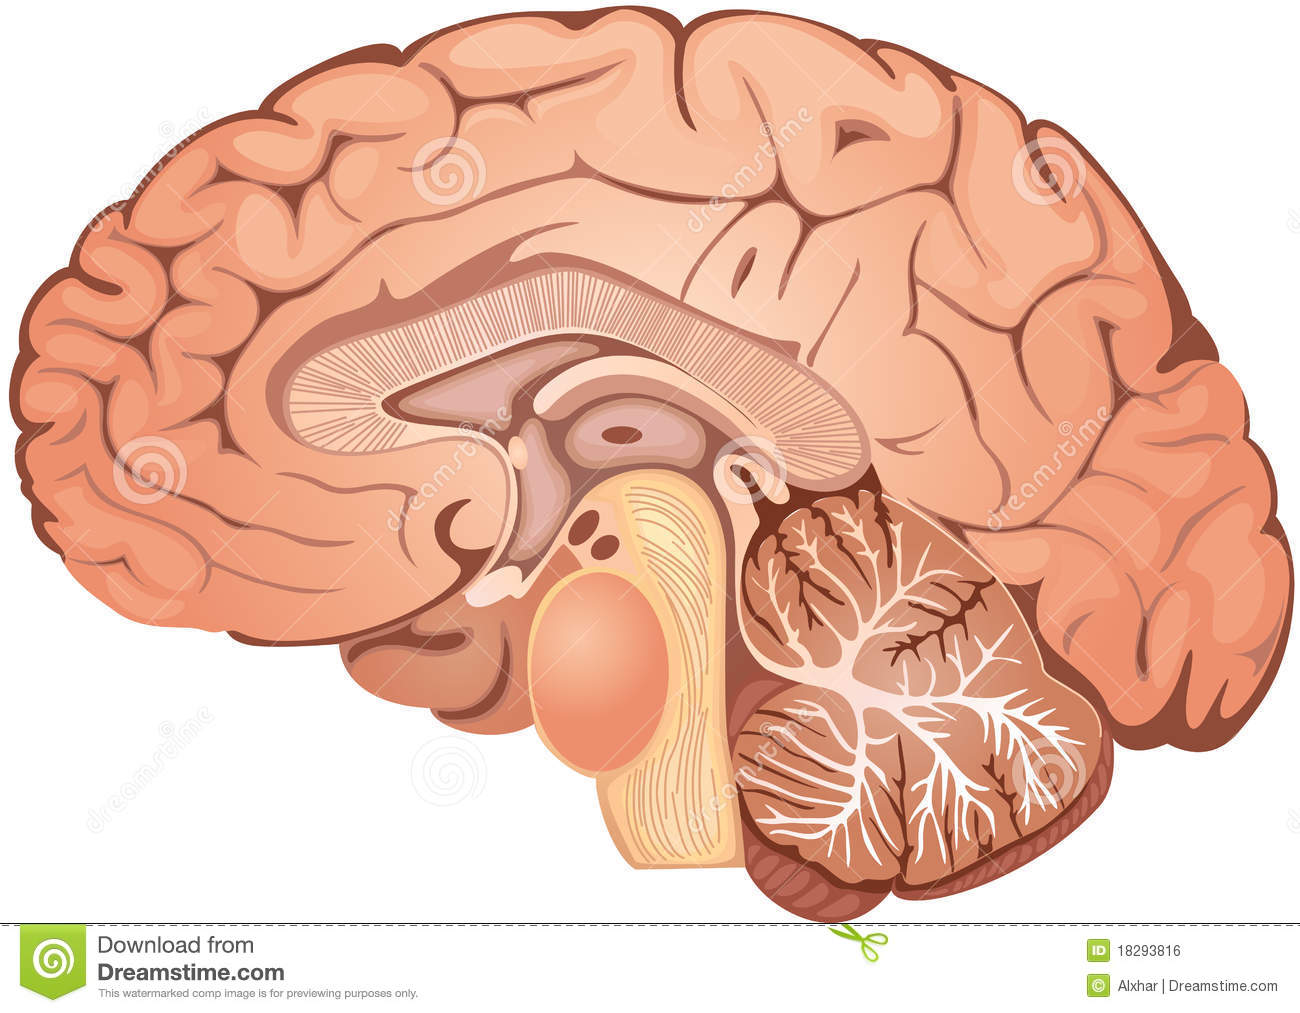 Brain Stock Vector Illustration Of Spinal Section Thalamus 18293816